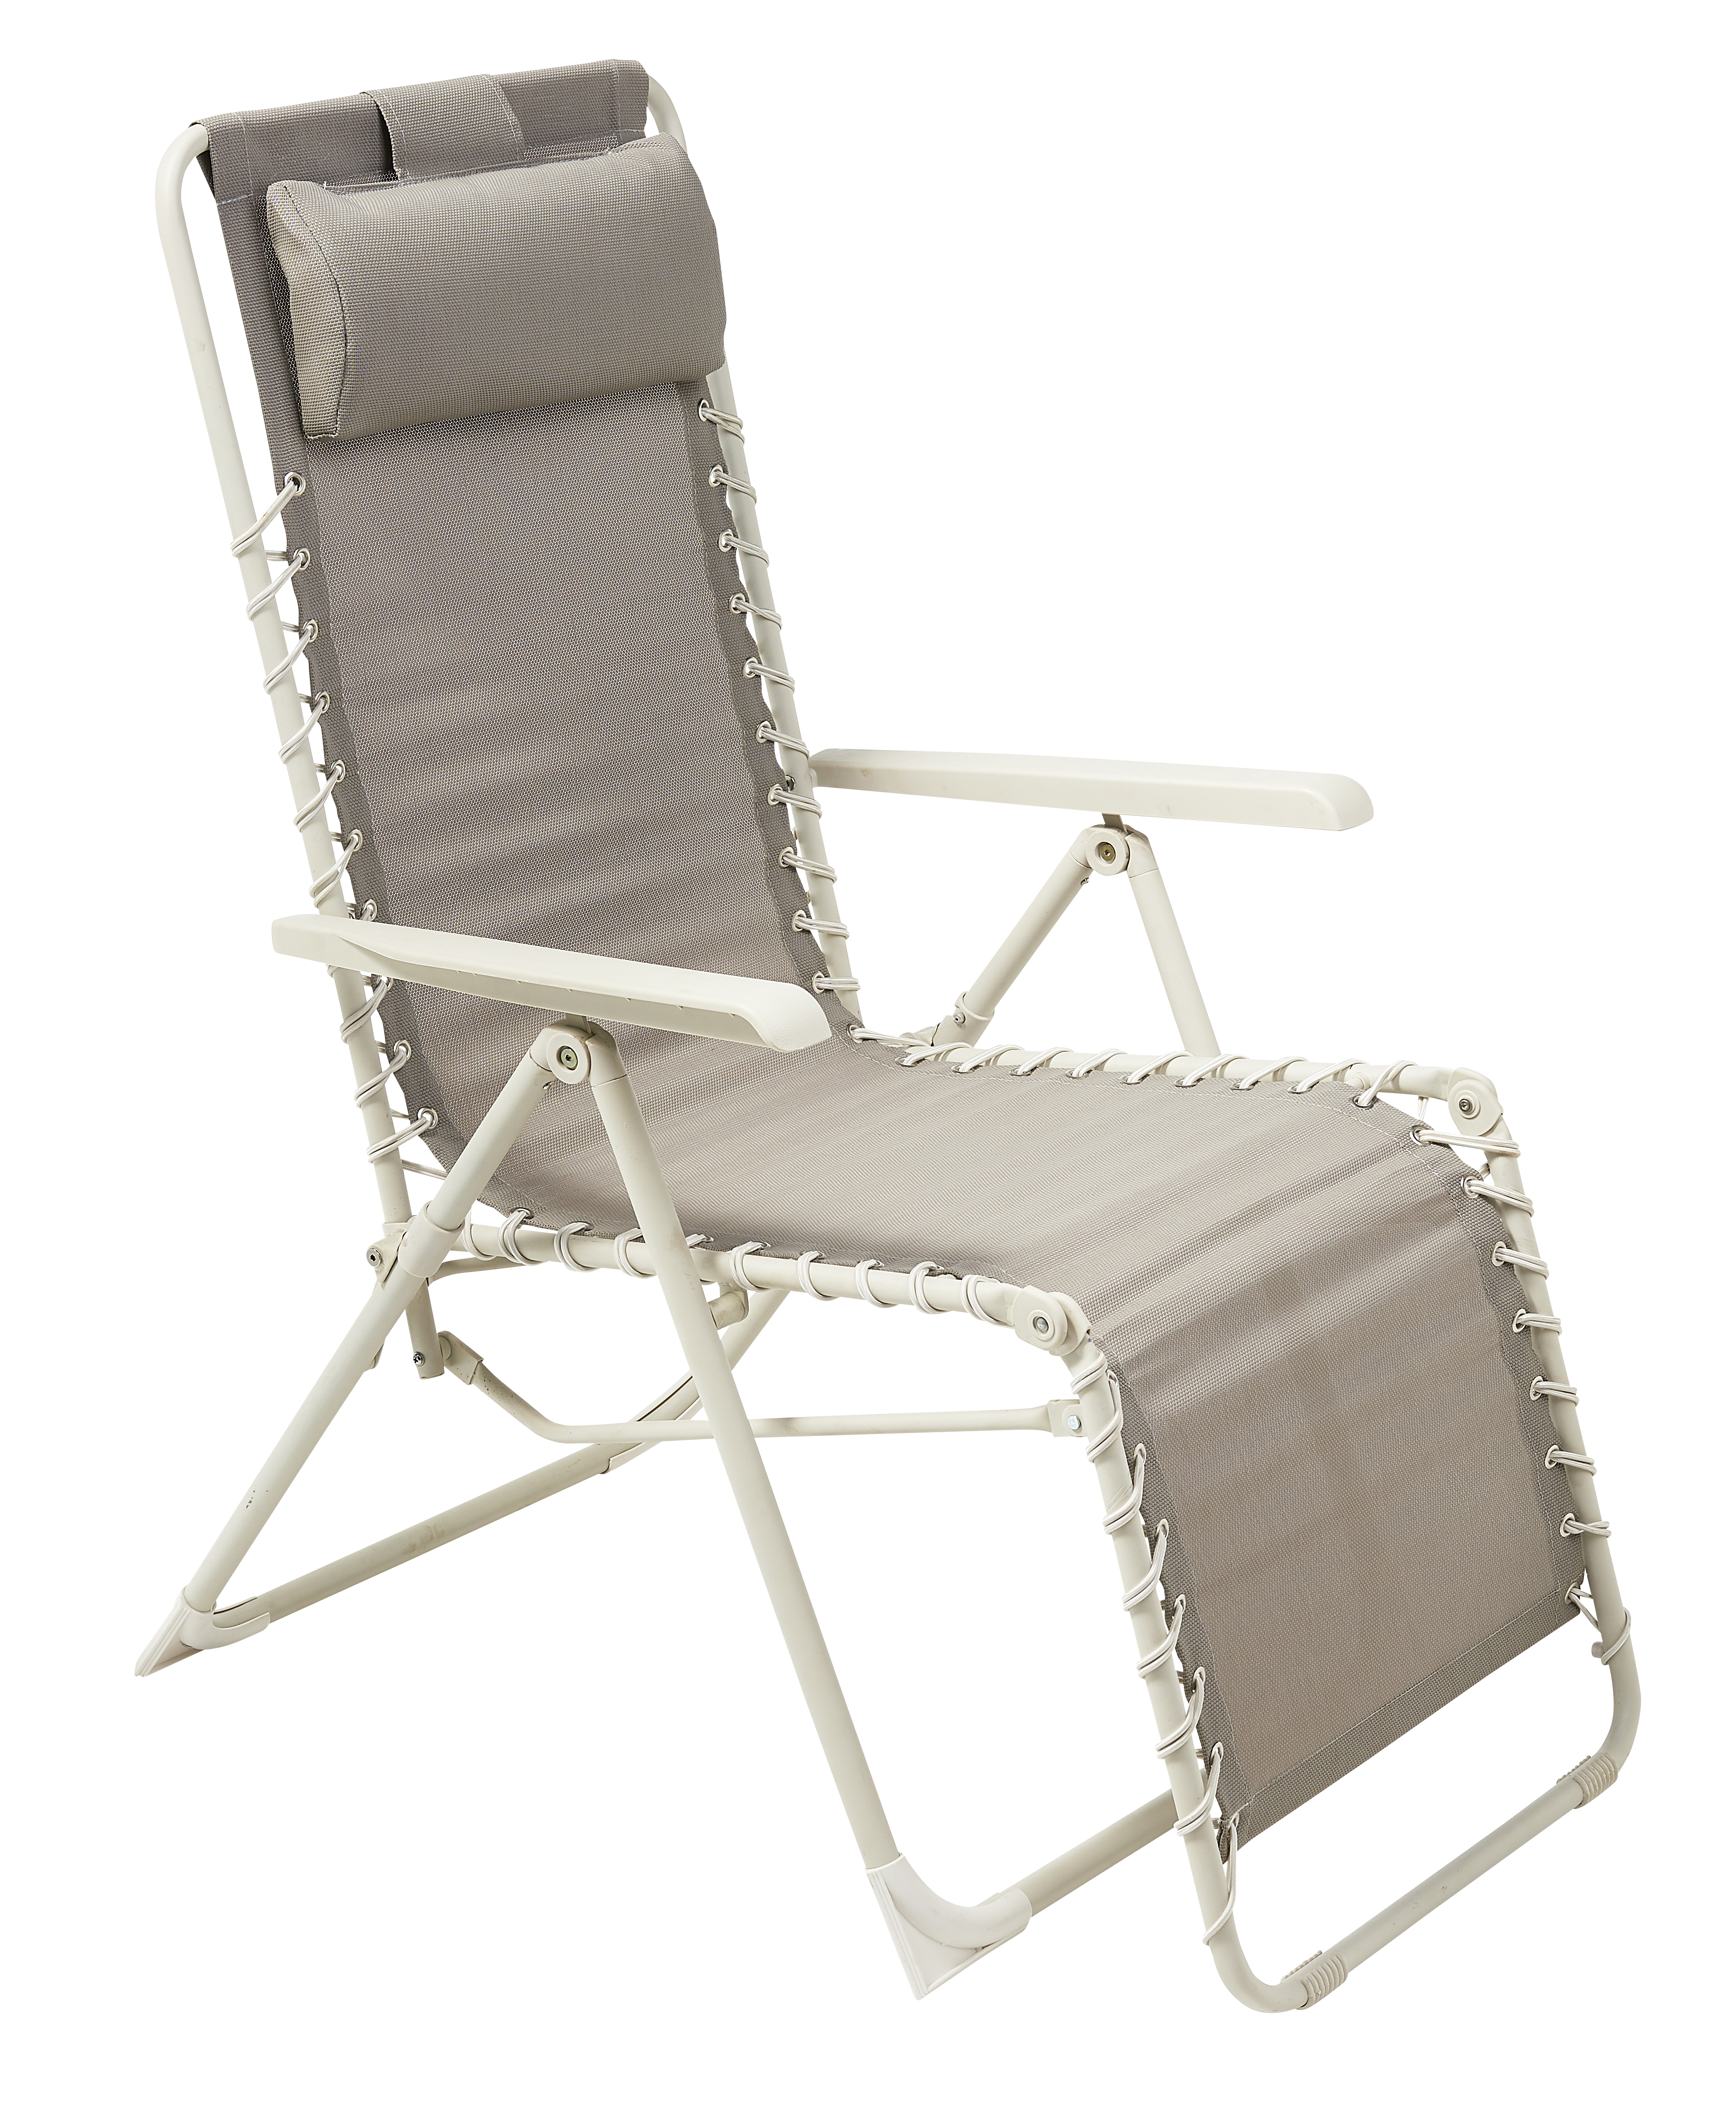 CARREFOUR Fauteuil Relax® multiposition Taupe pas cher